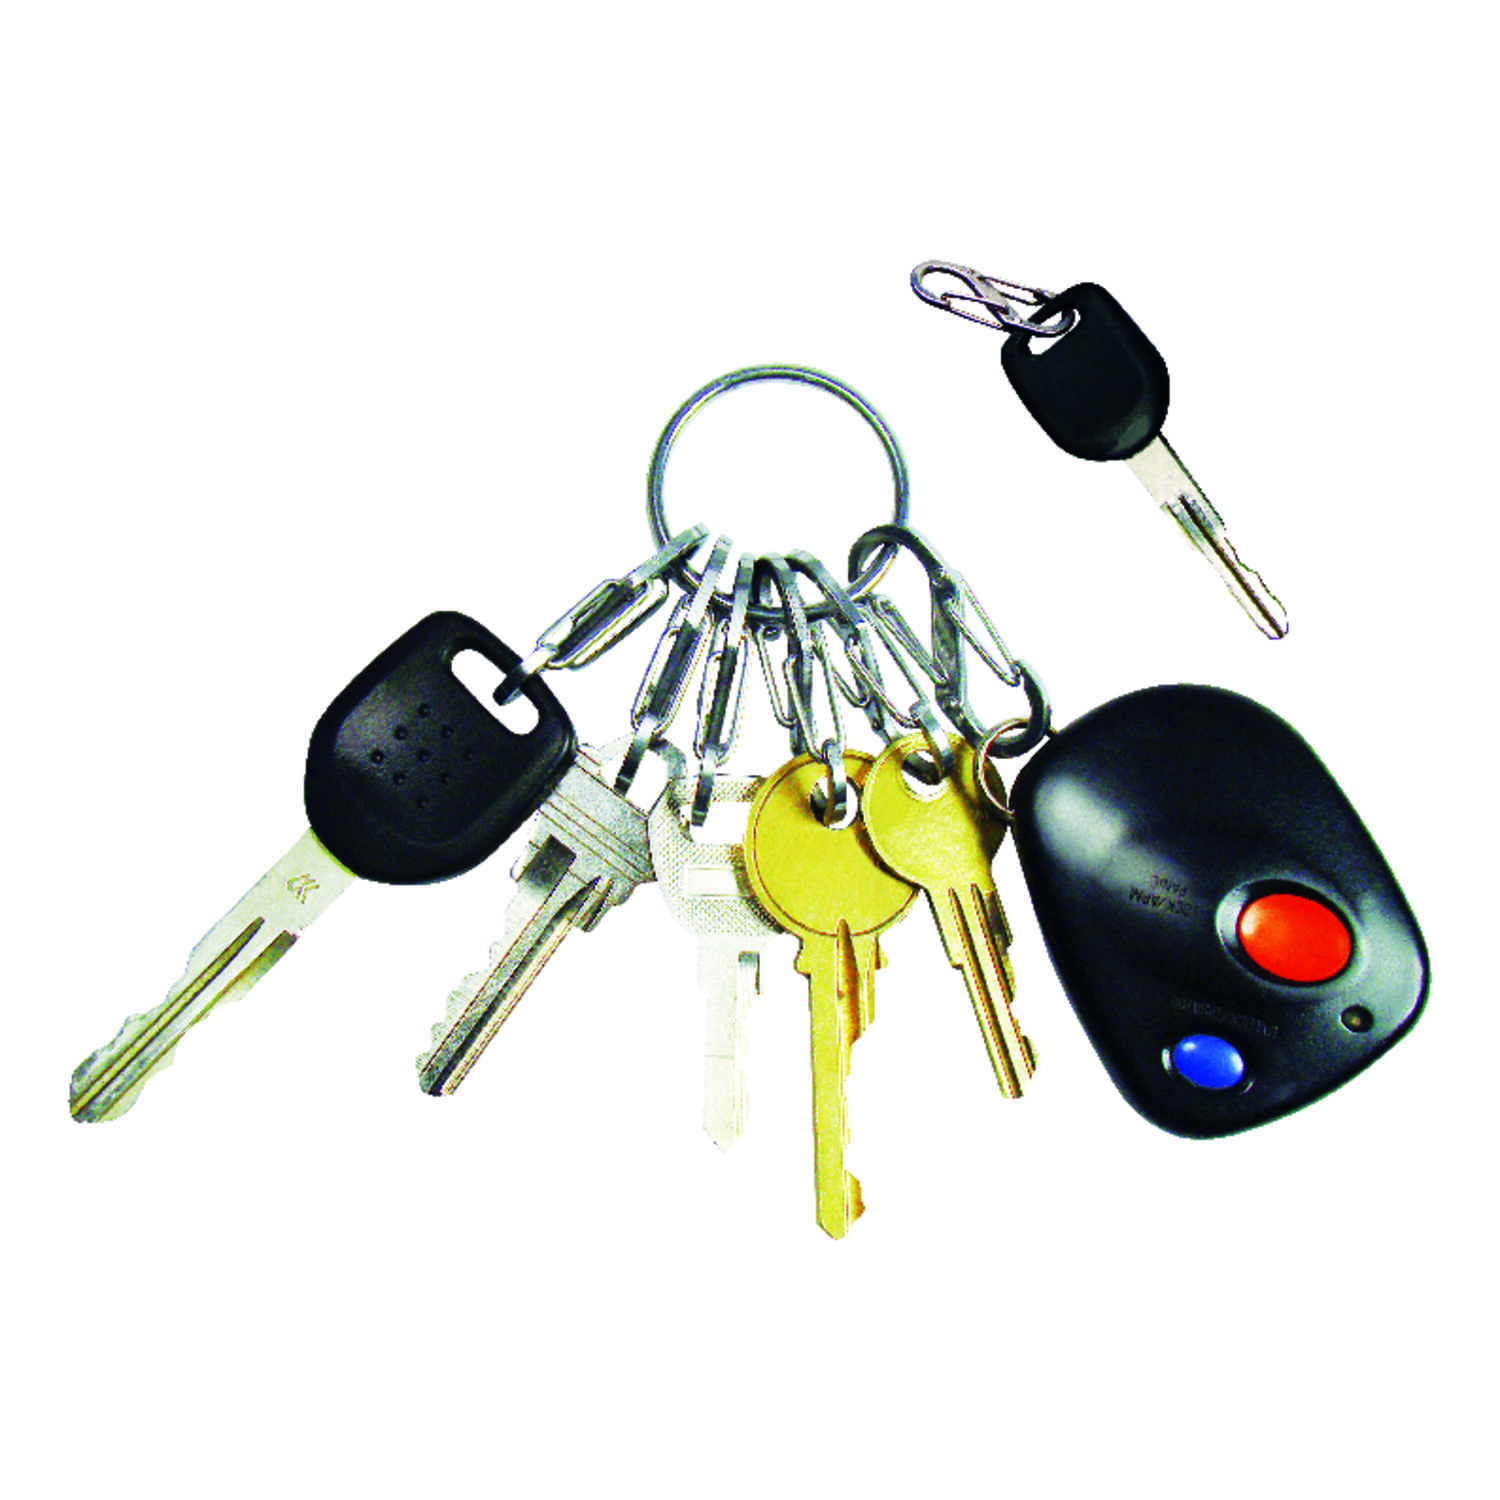 Nite Ize  KeyRing Steel  2 in. Dia. Stainless Steel  Silver  Key Ring